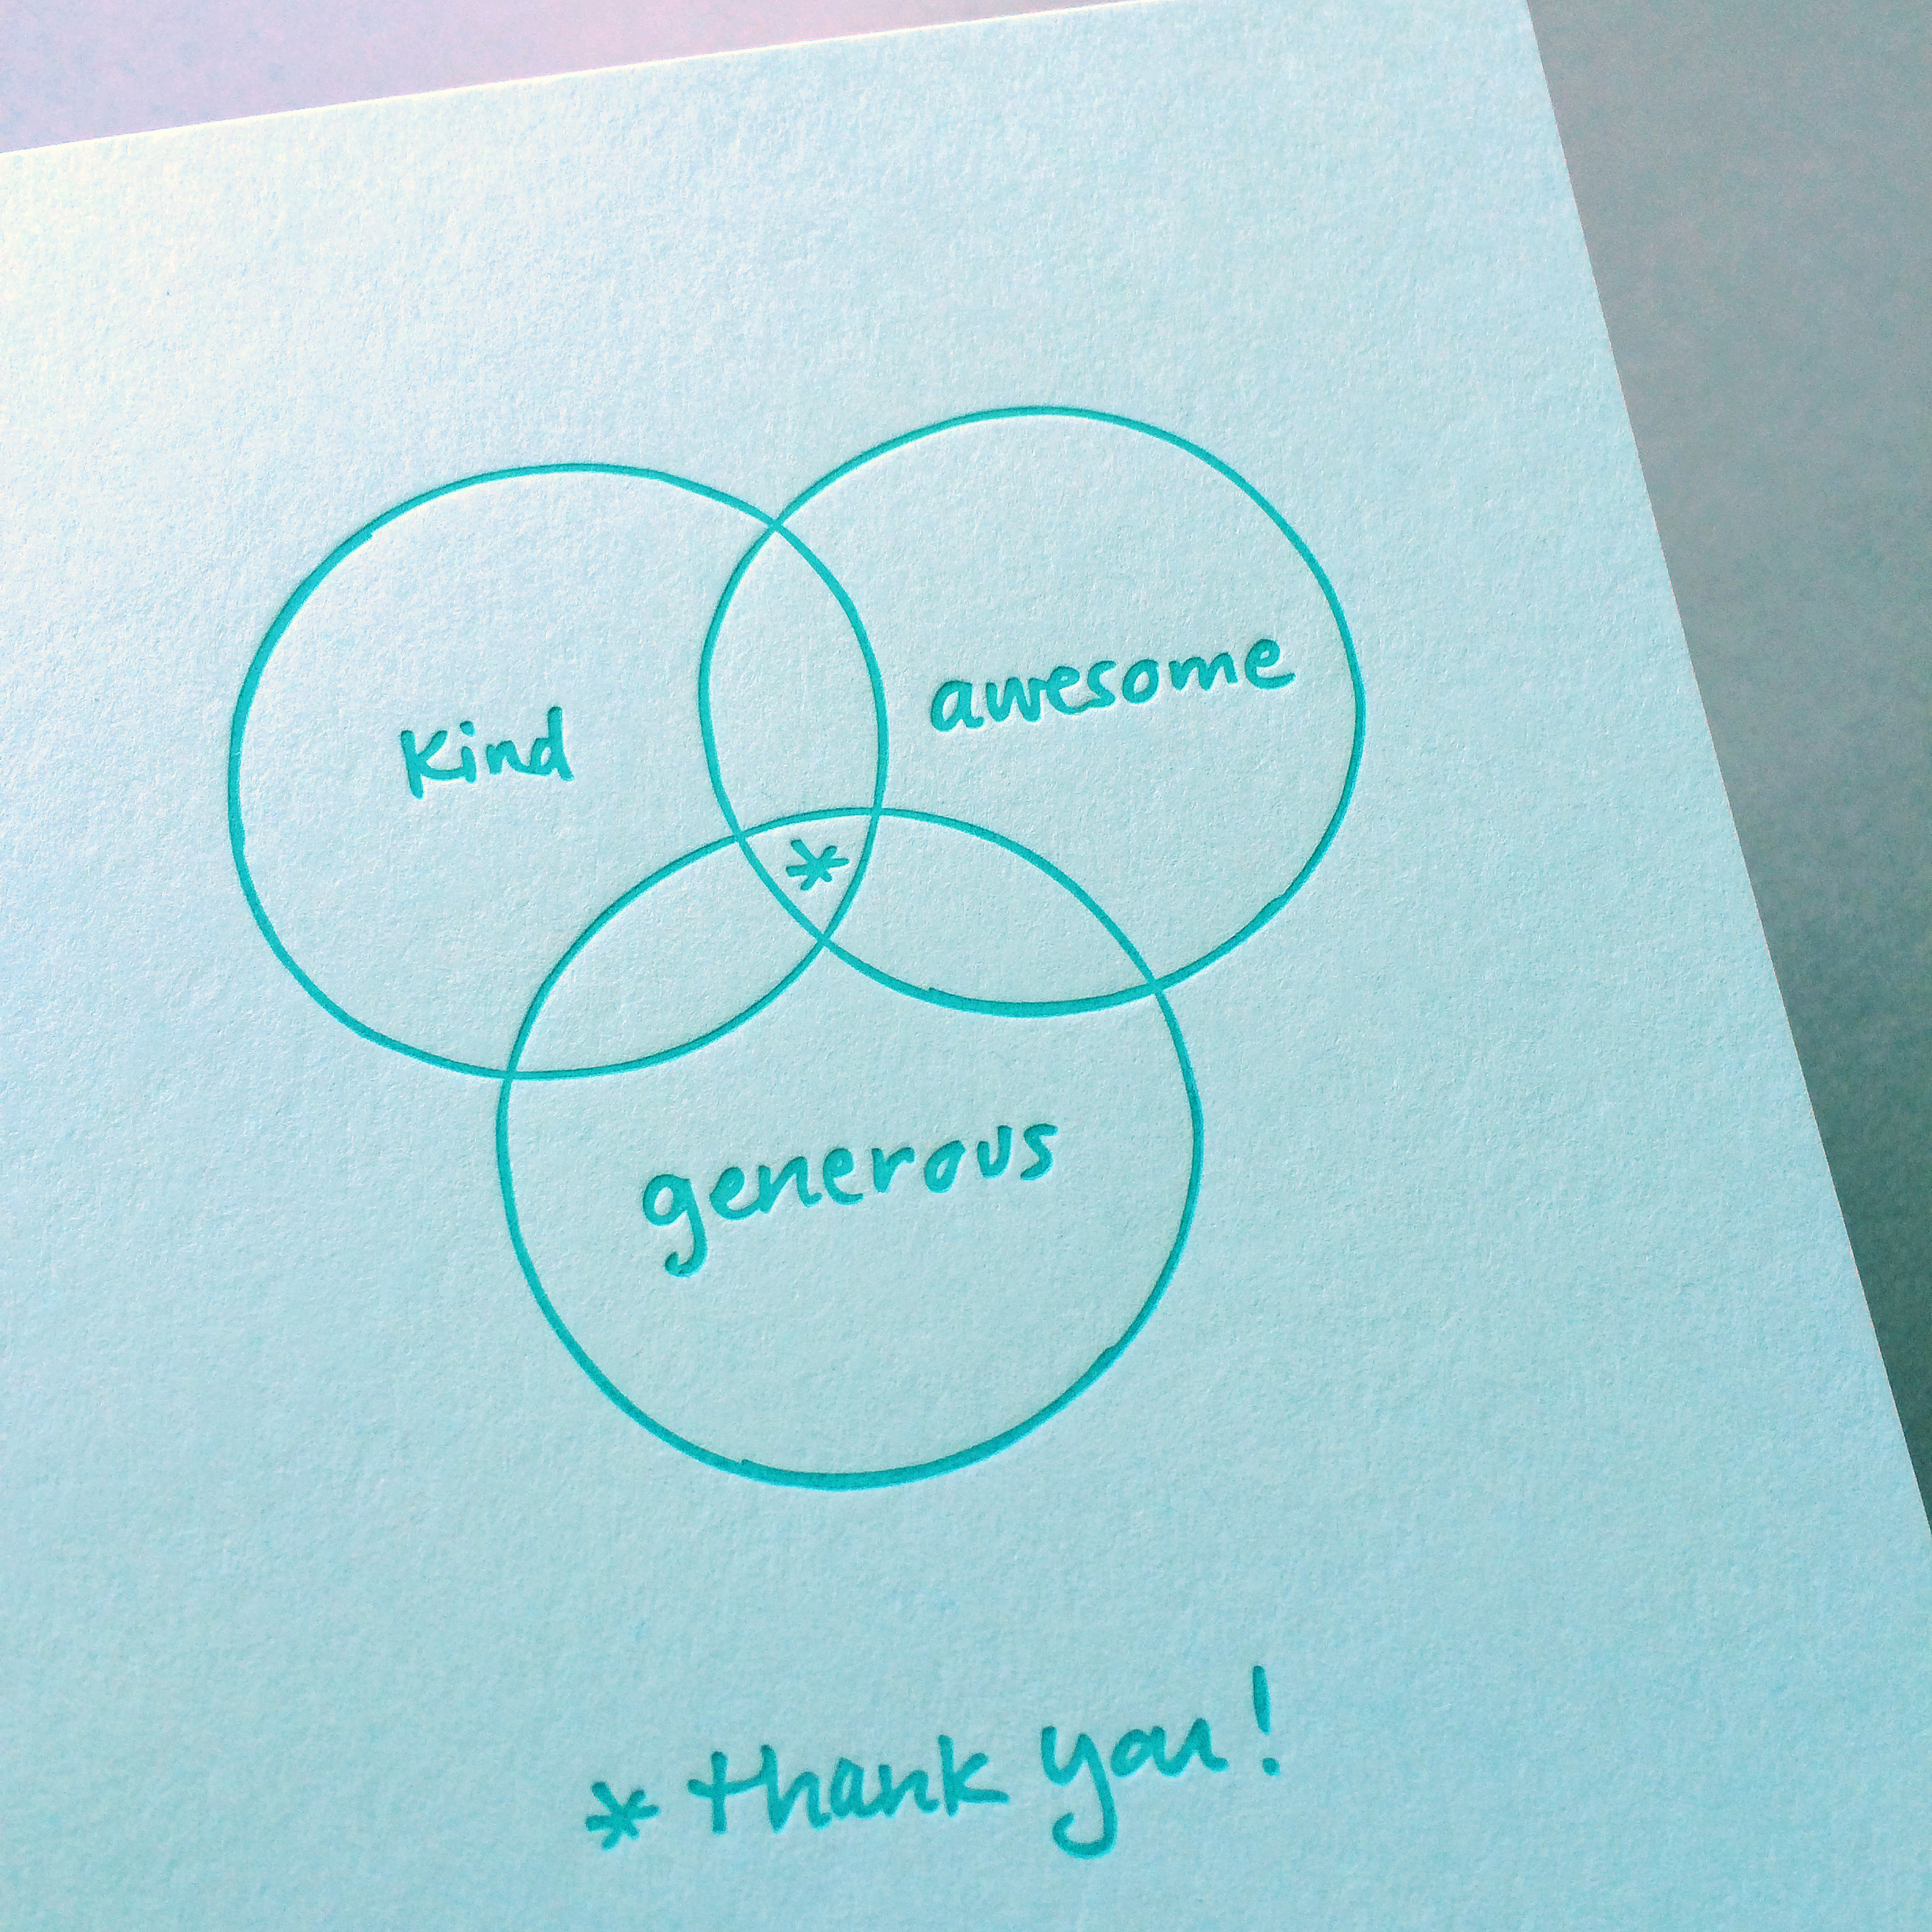 venn thank you_closeup.jpg